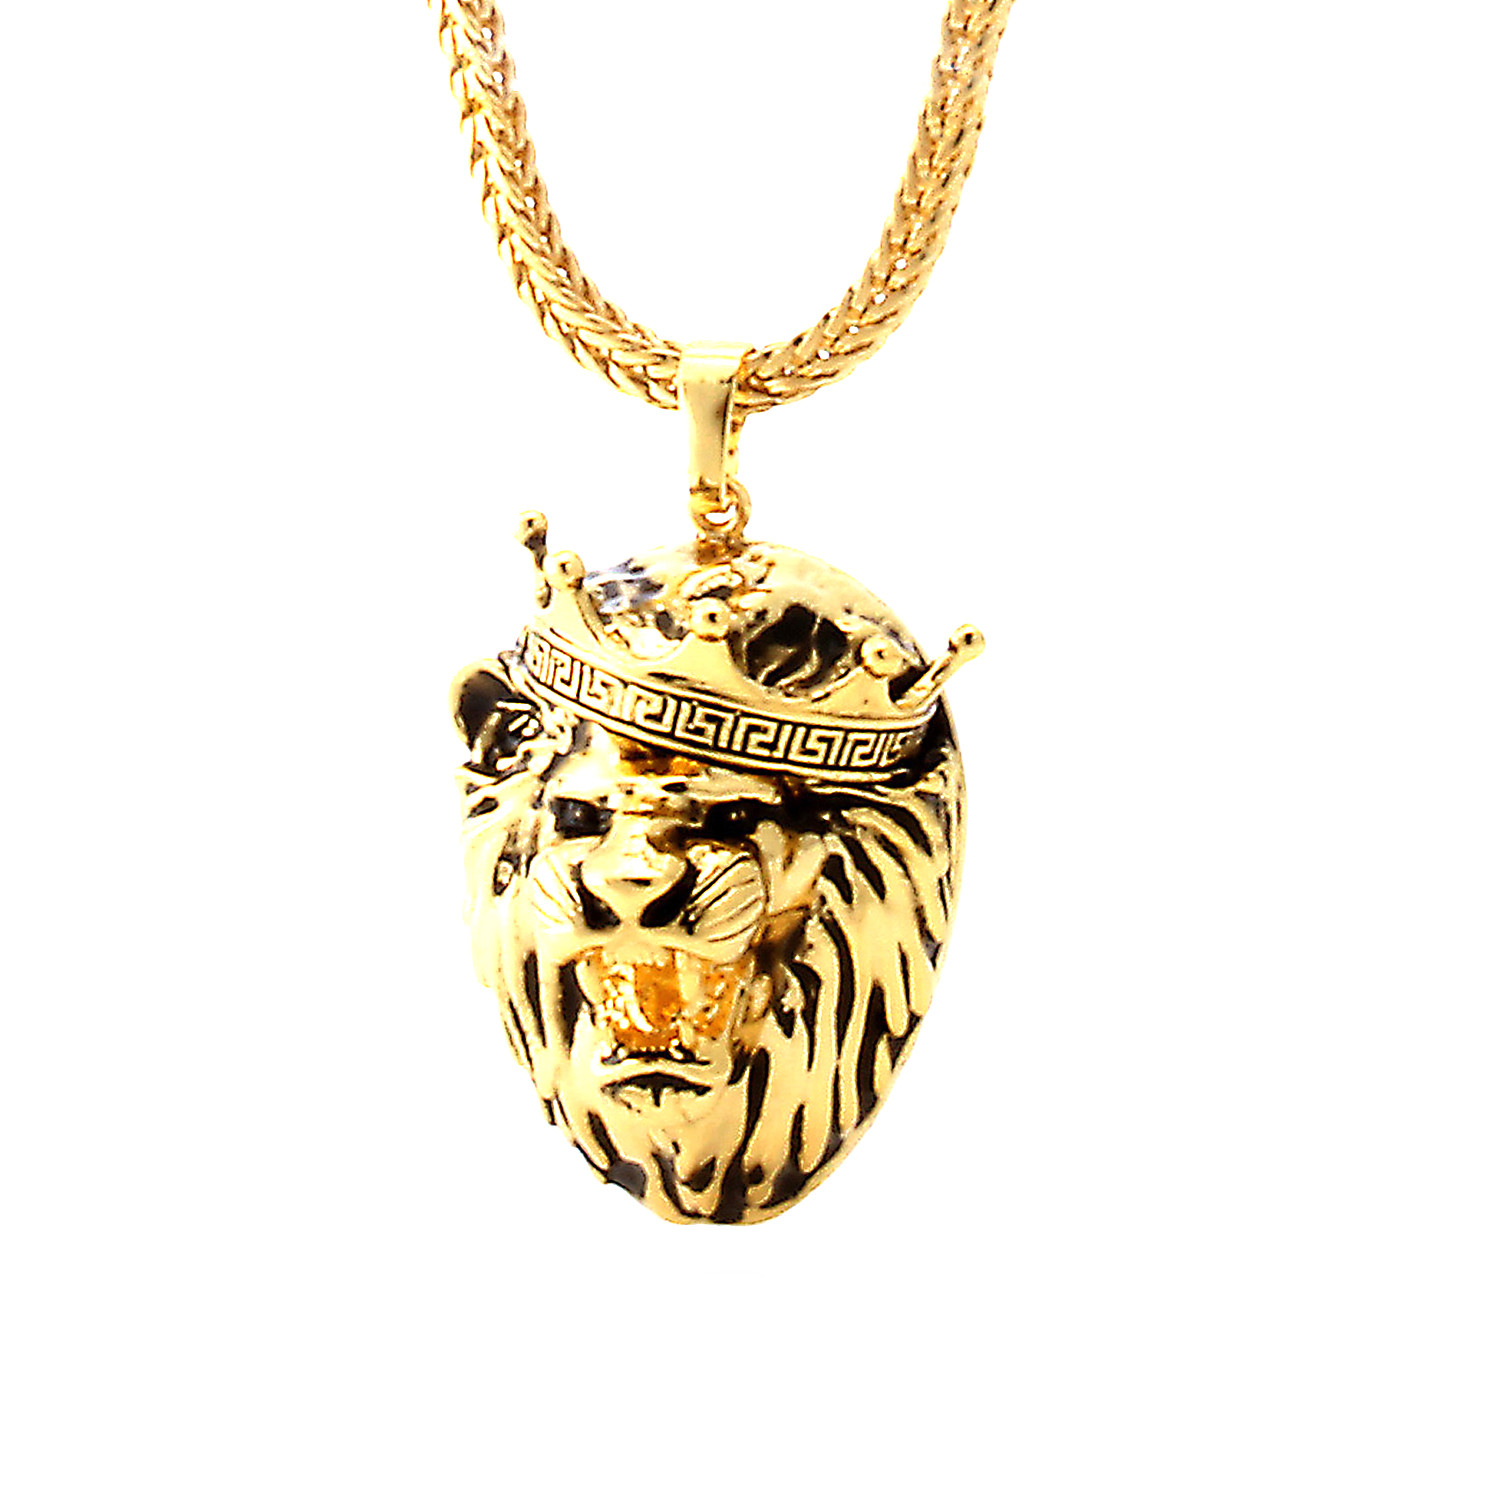 floor necklace products mosaic ncklwc lion getty herakles wholesale pendant